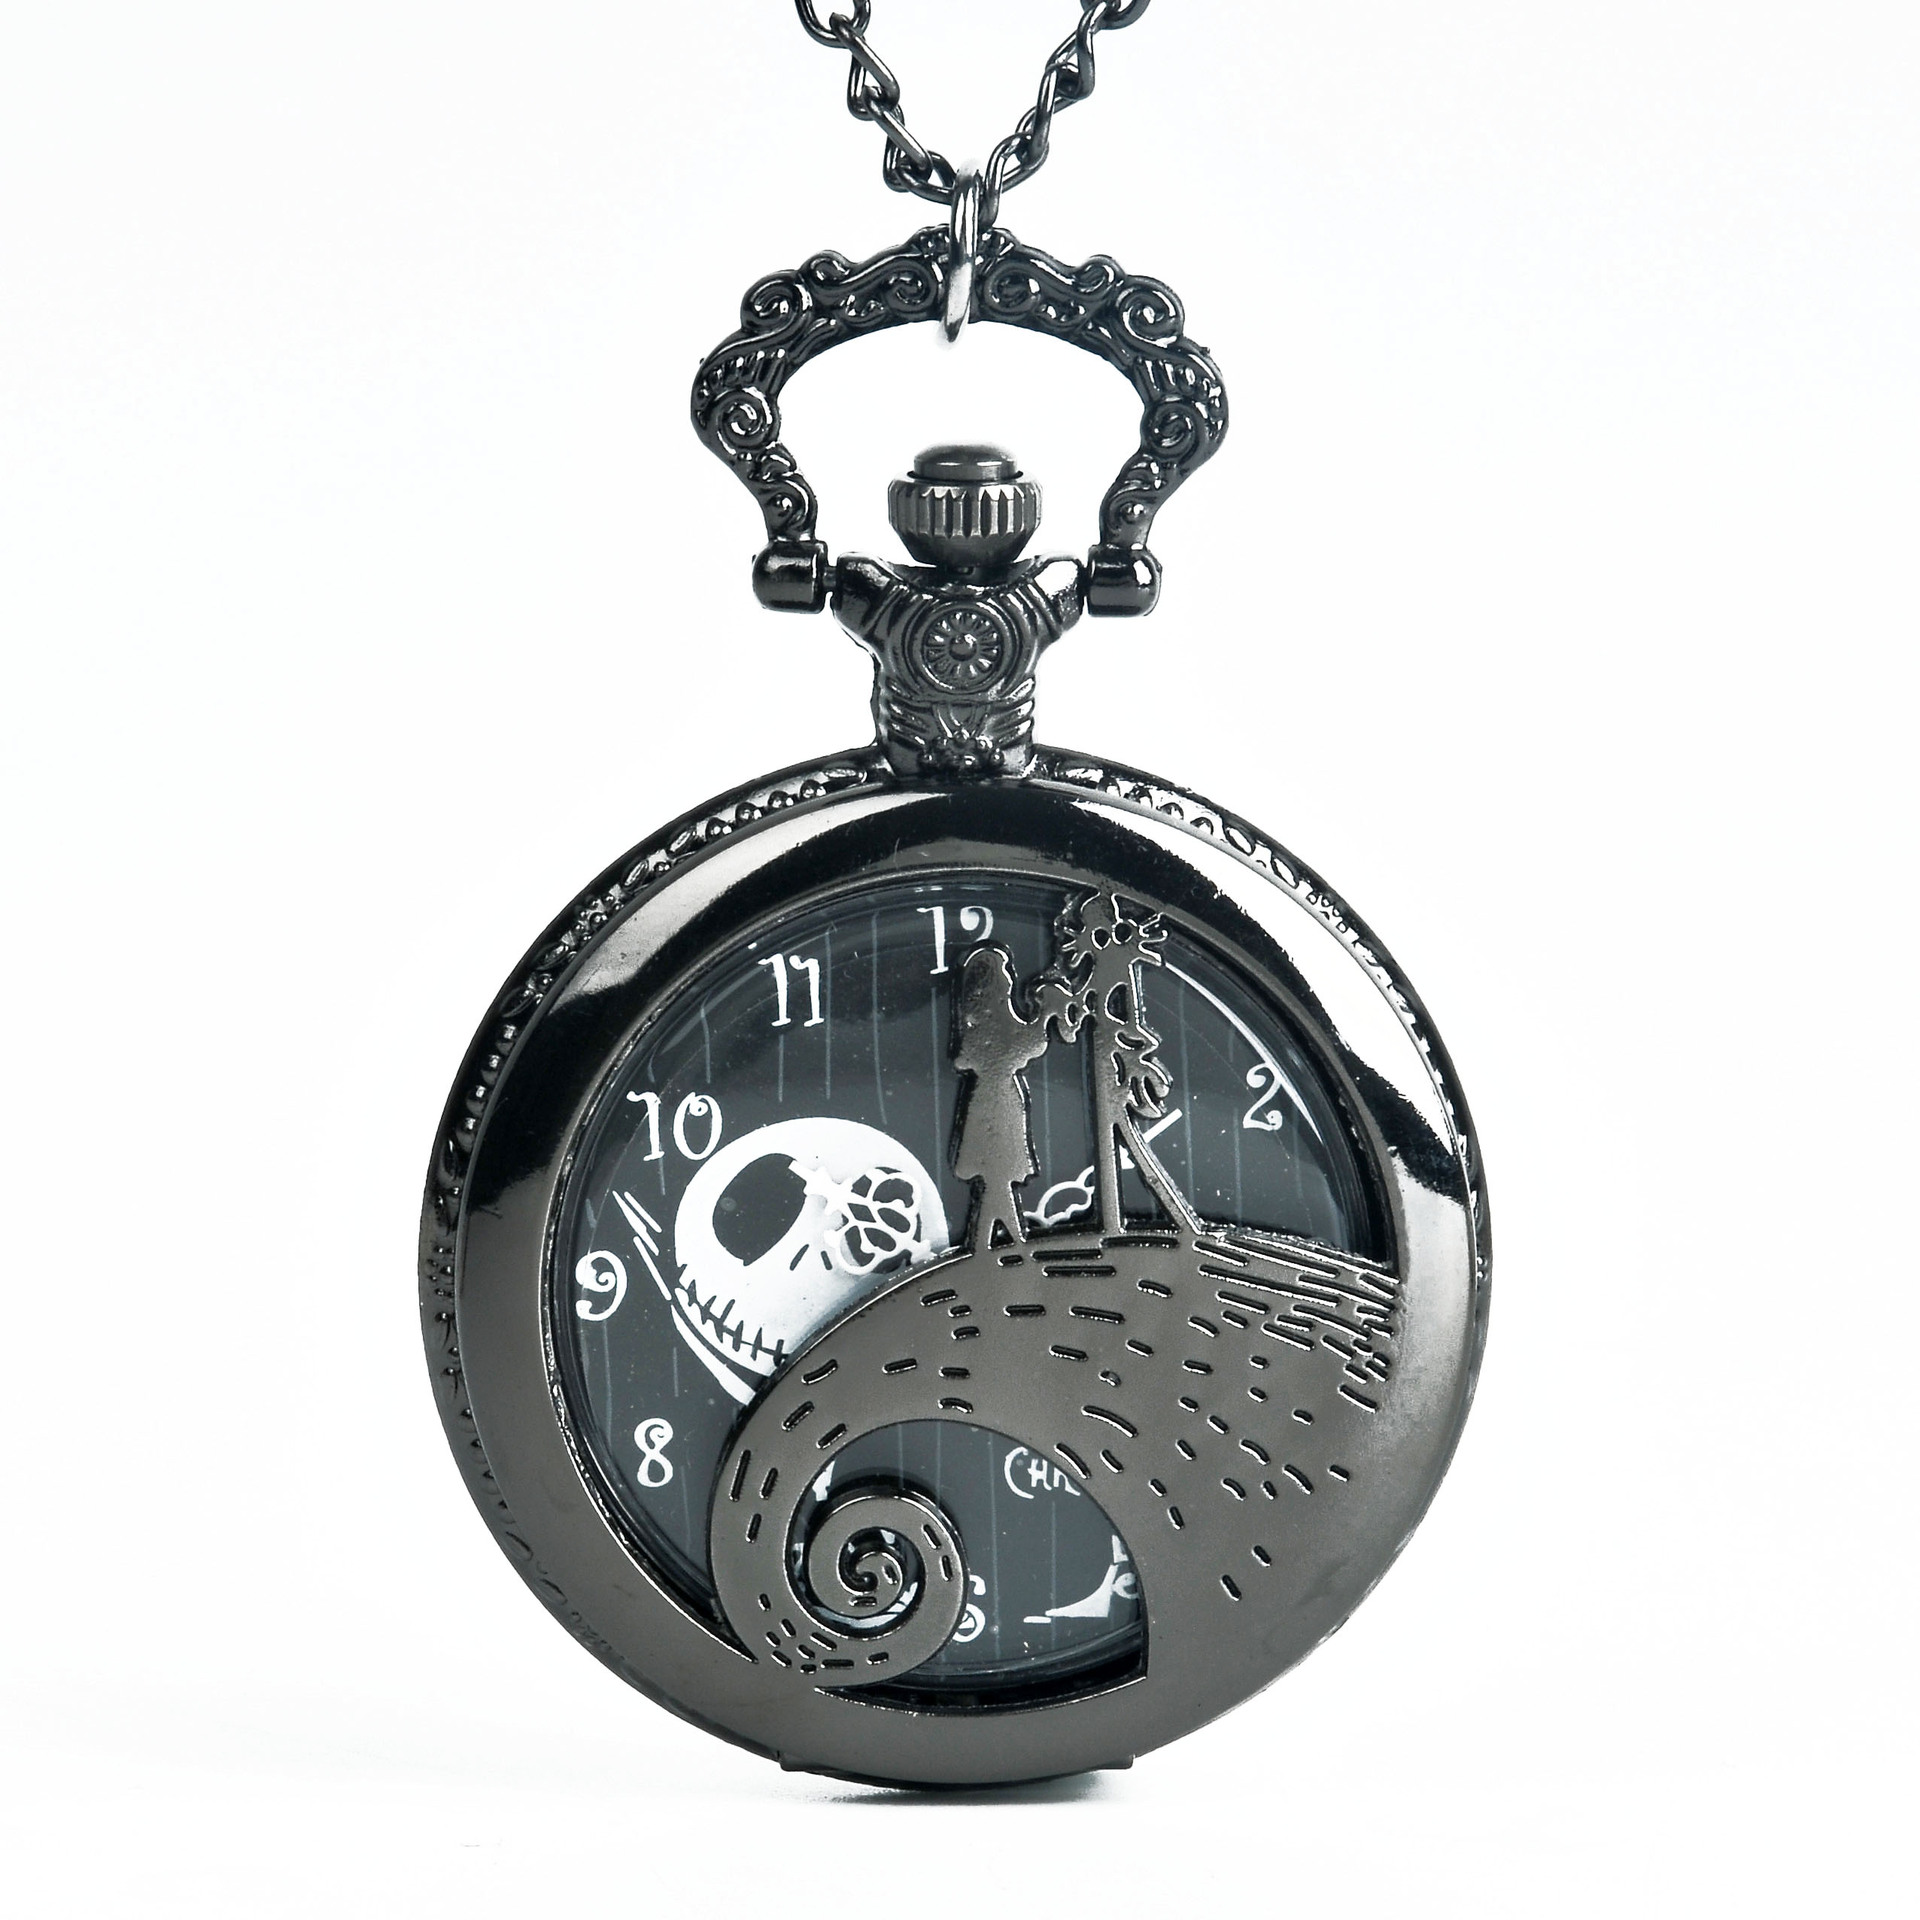 9003Silver/Black/Bronze The Nightmare Before Christmas Pocket Watch Jack Skellington Tim Burton Movie Kid Pendant Necklace Clock